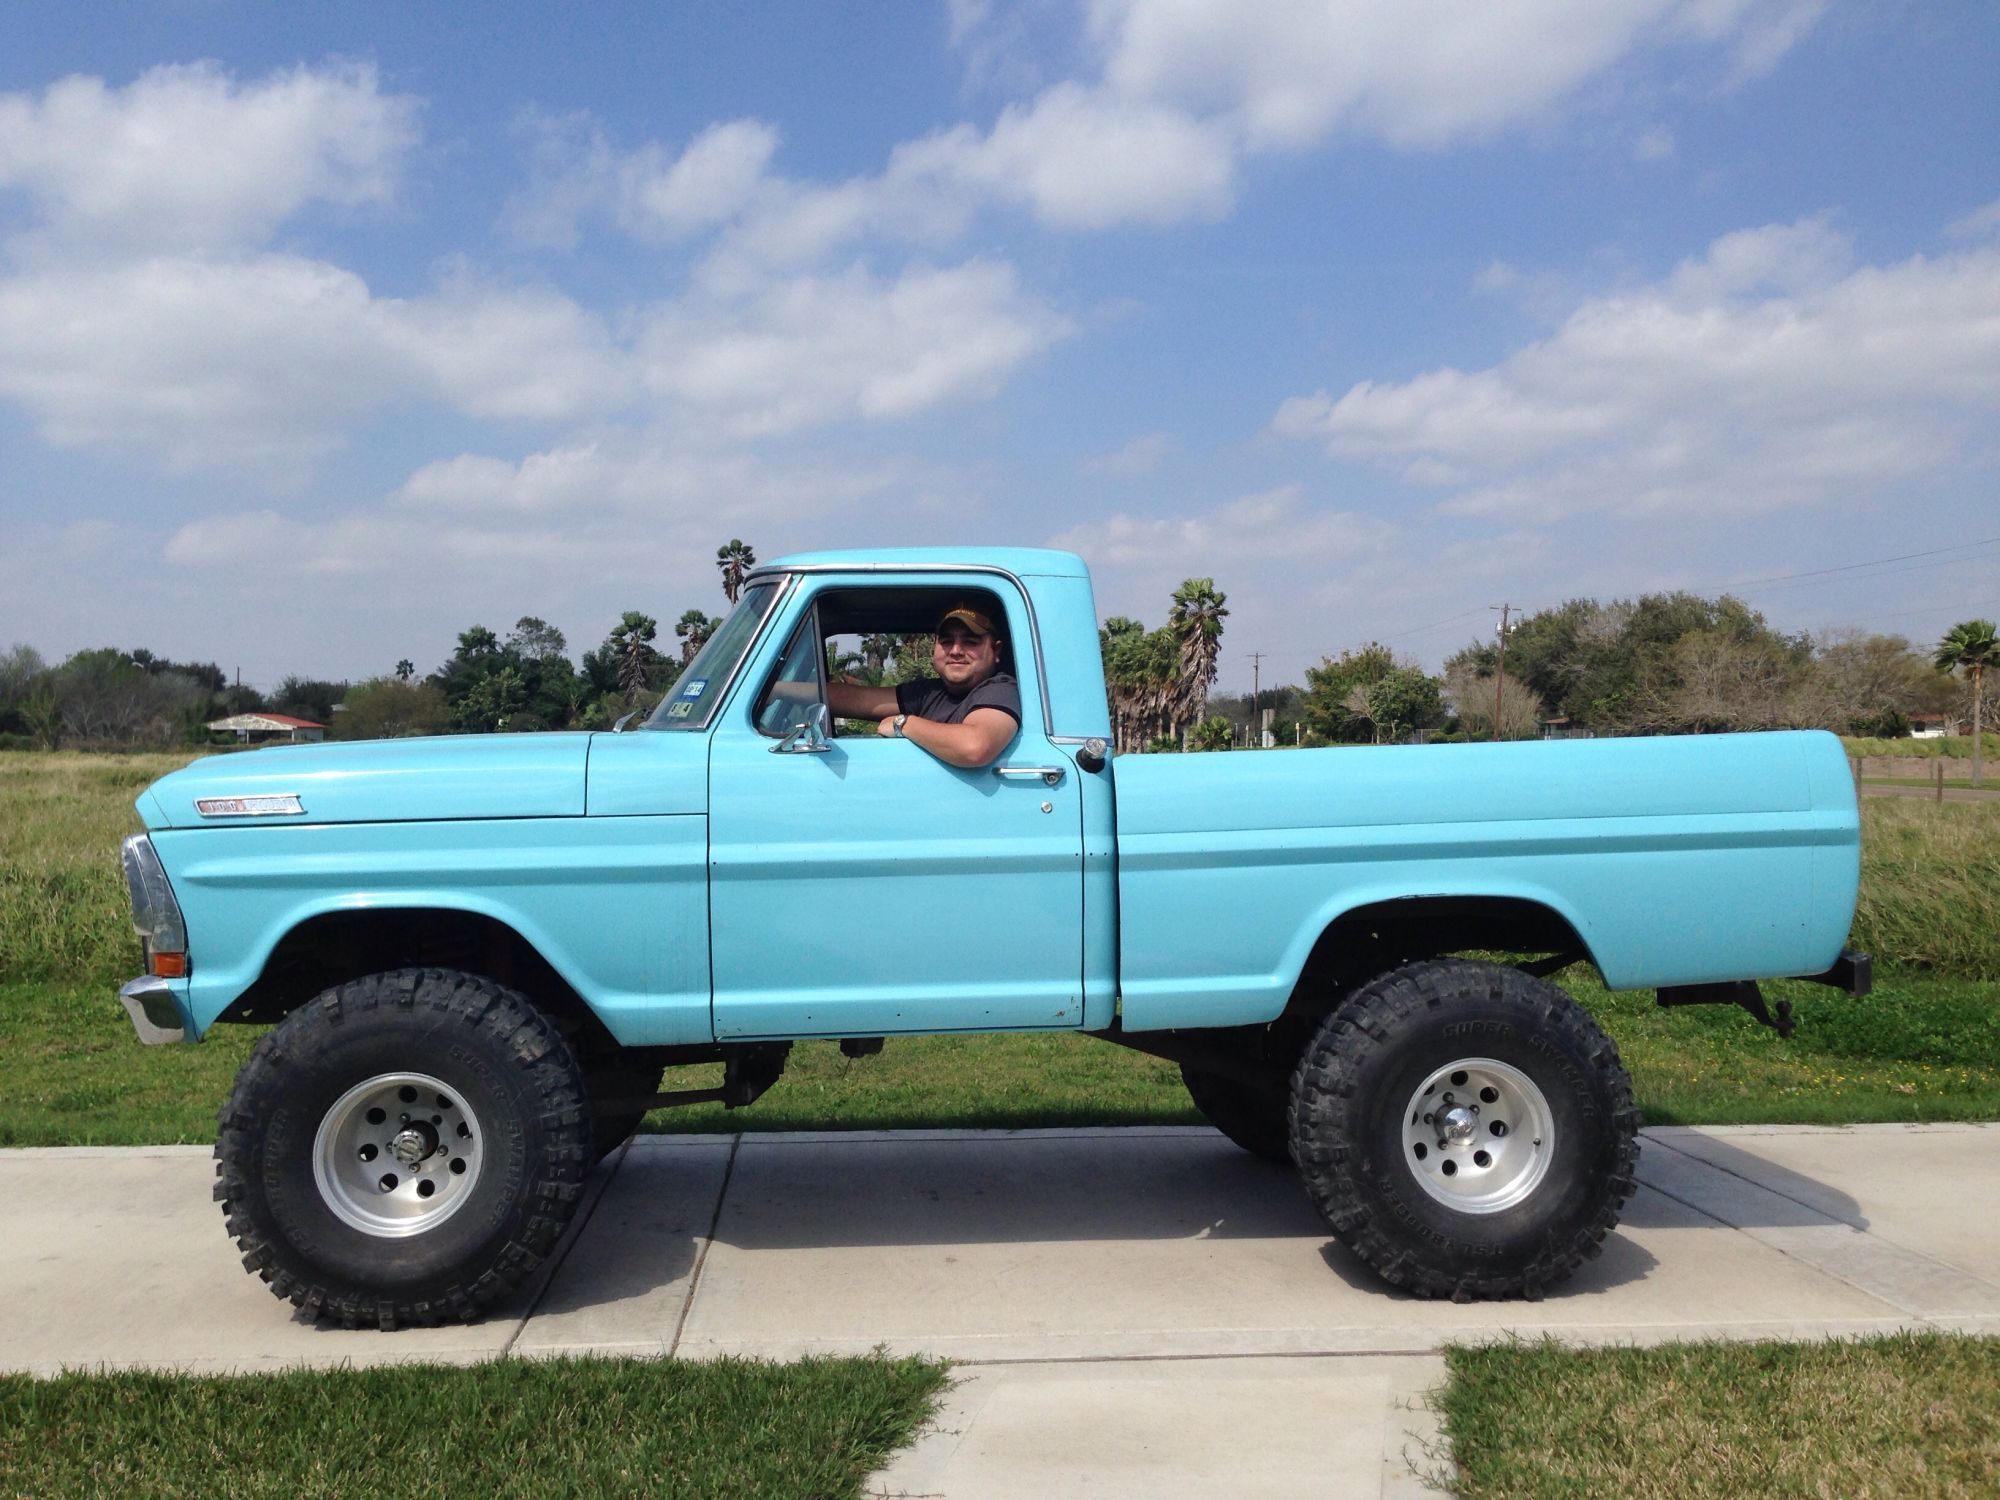 medium resolution of 67 72 lifted 4x4 pics page 10 ford truck enthusiasts forums